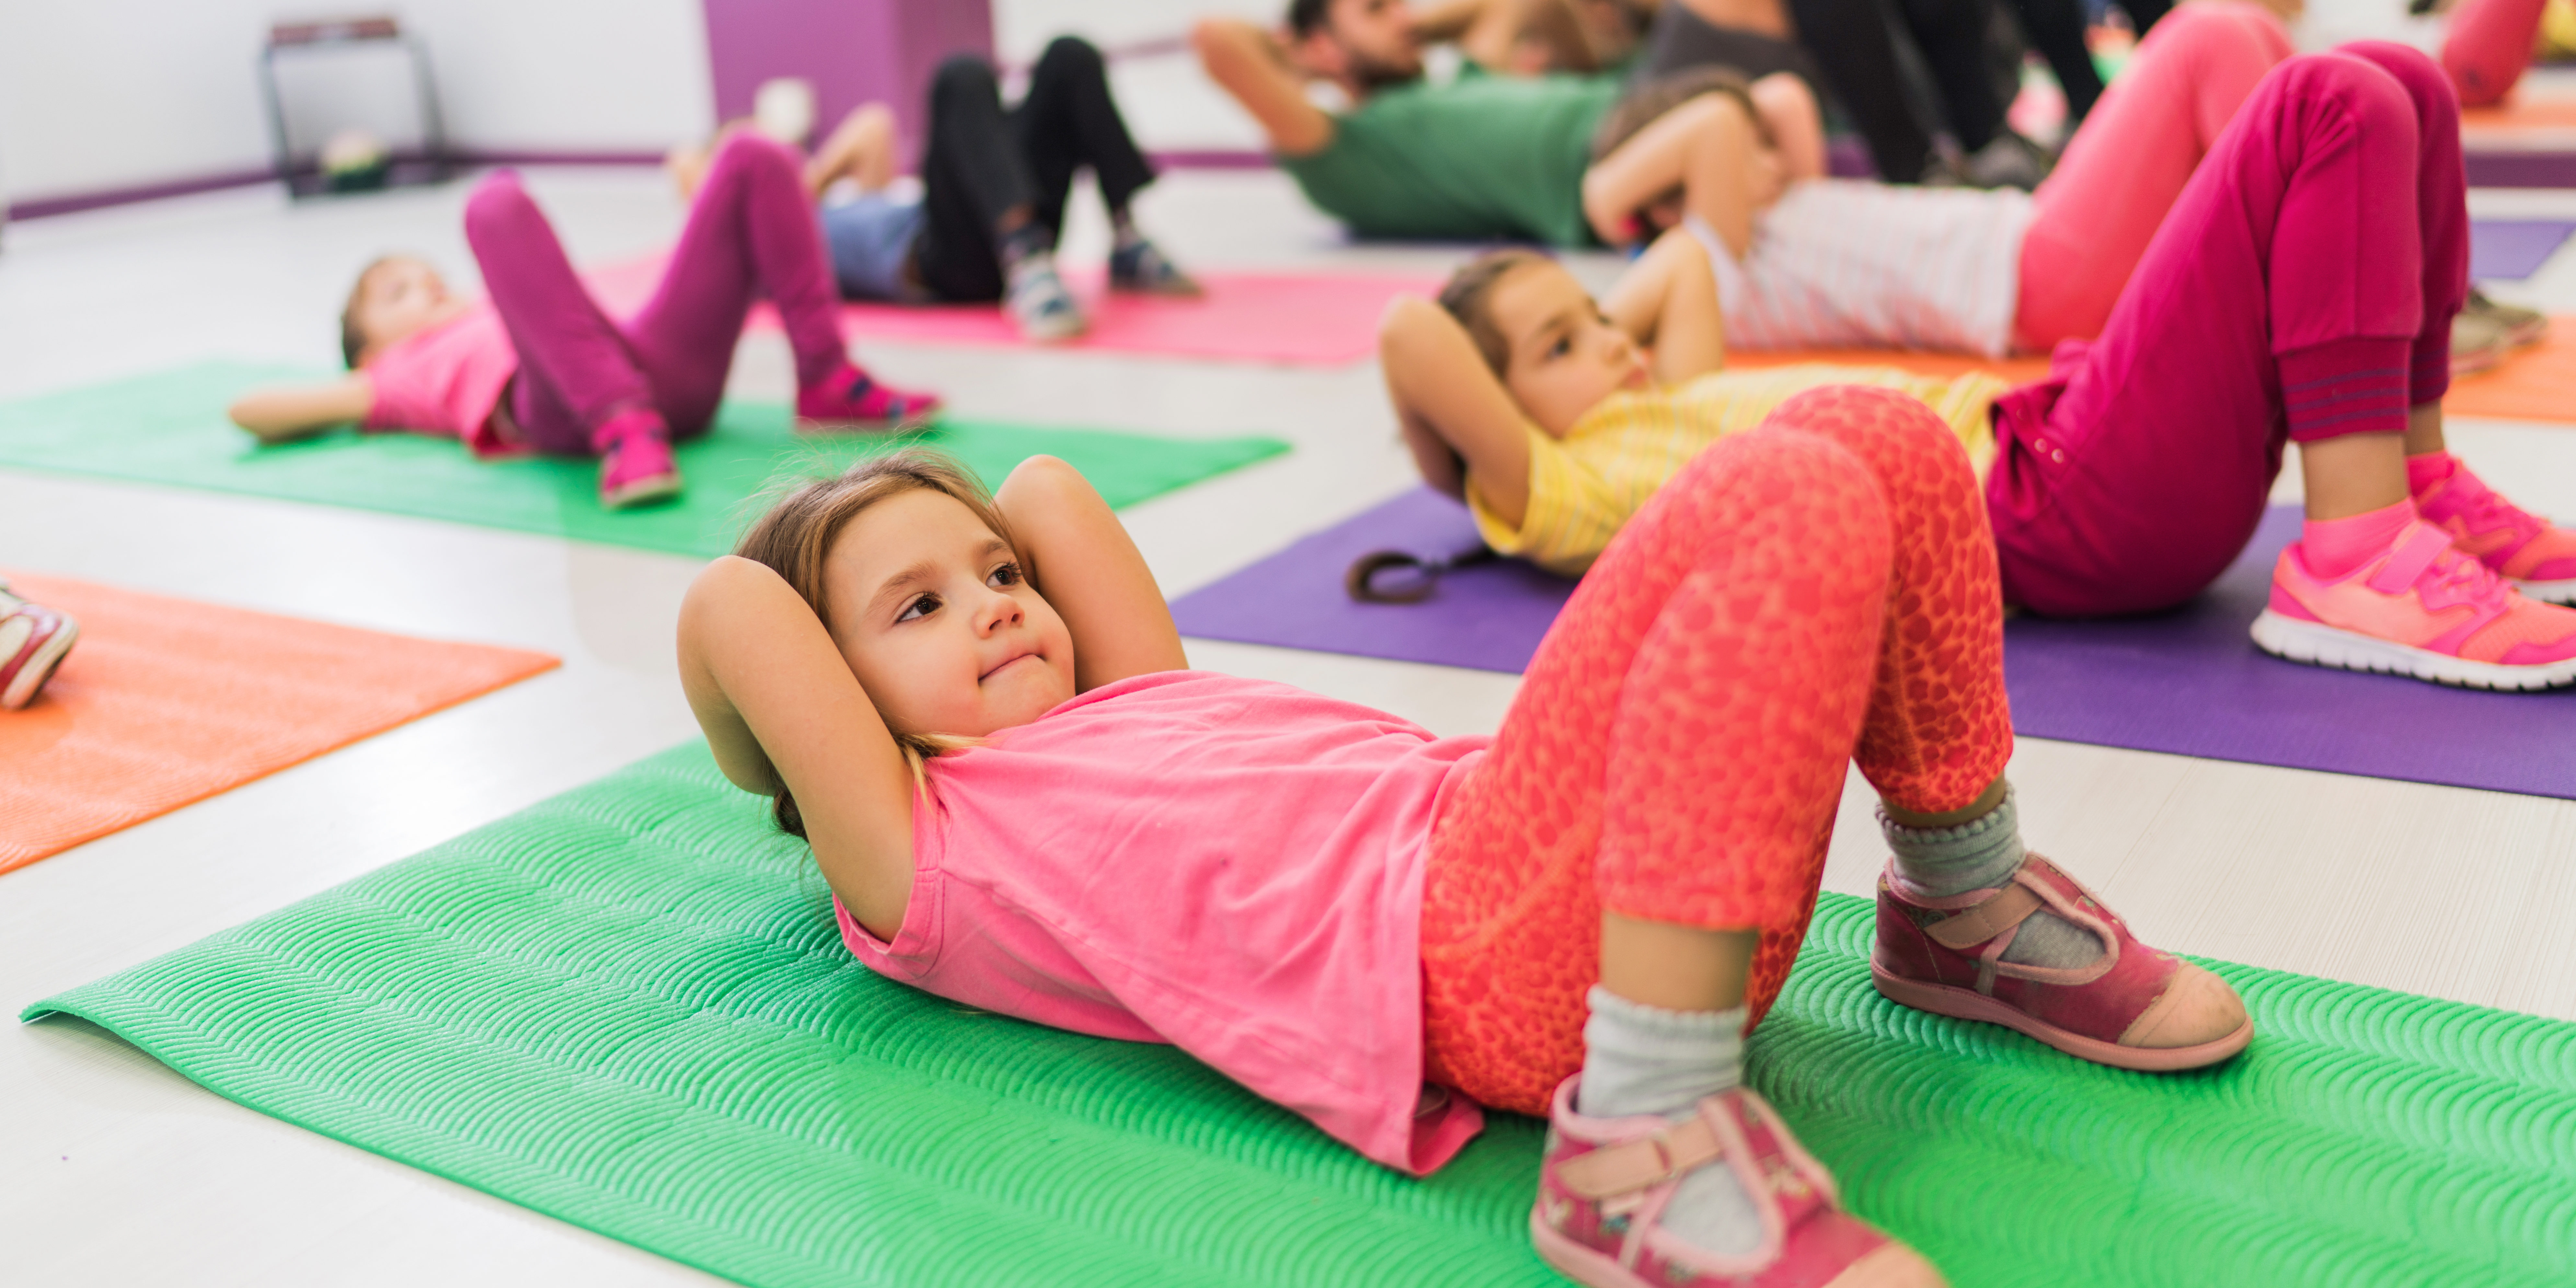 Kids doing sit-ups on a sports training in health club.